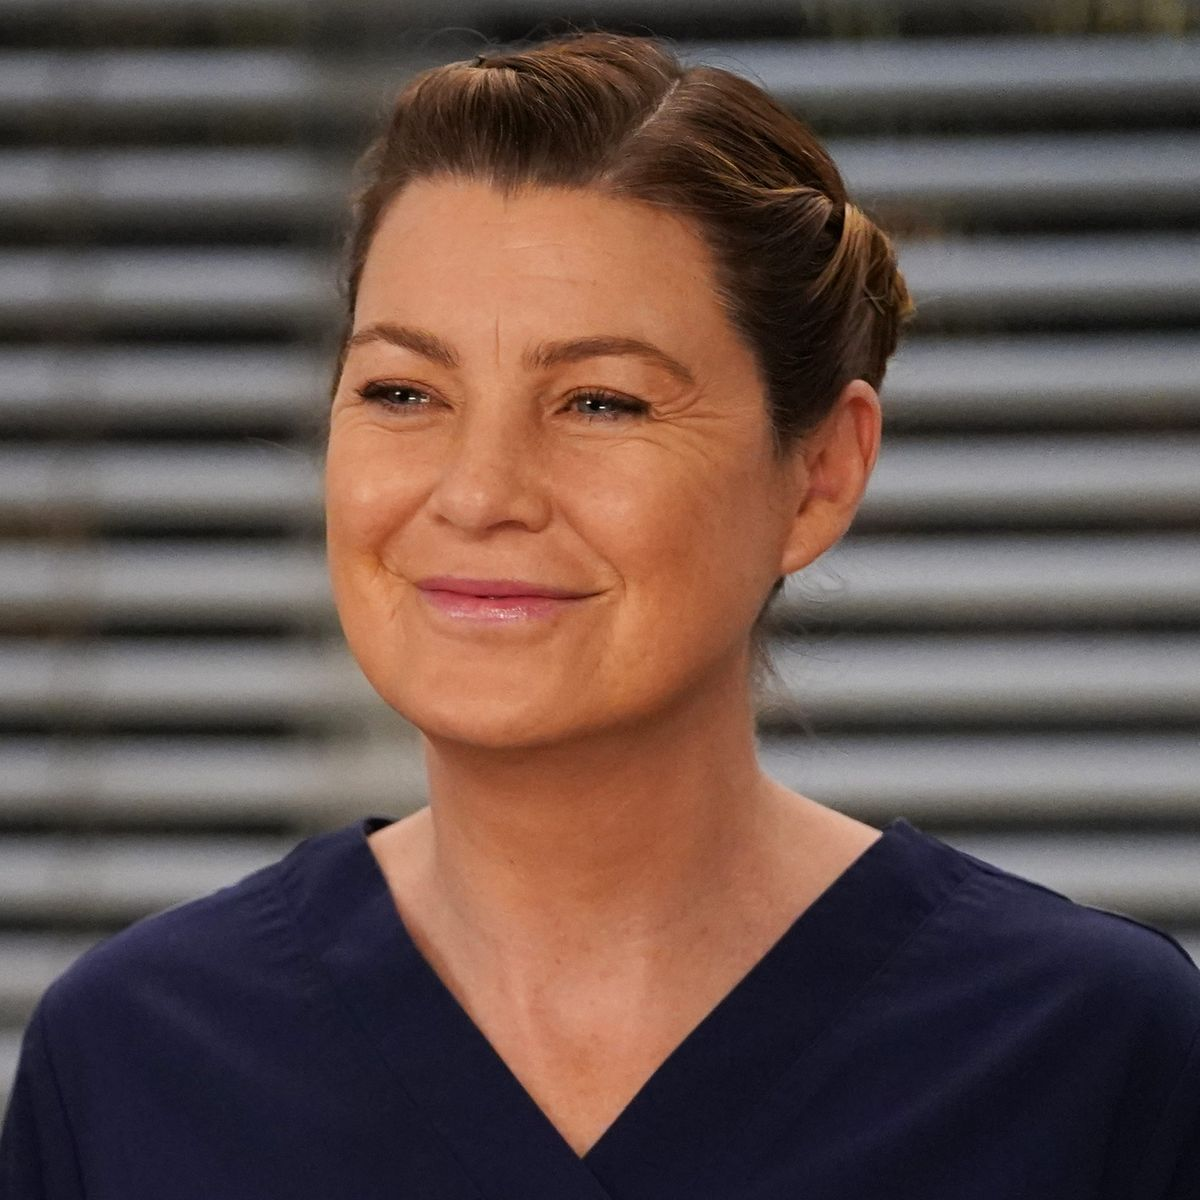 ellen-pompeo-50-gets-candid-about-aging-on-screen-during-greys-anatomys-16-seasons-admits-its-not-so-fun-and-talks-plans-to-leave